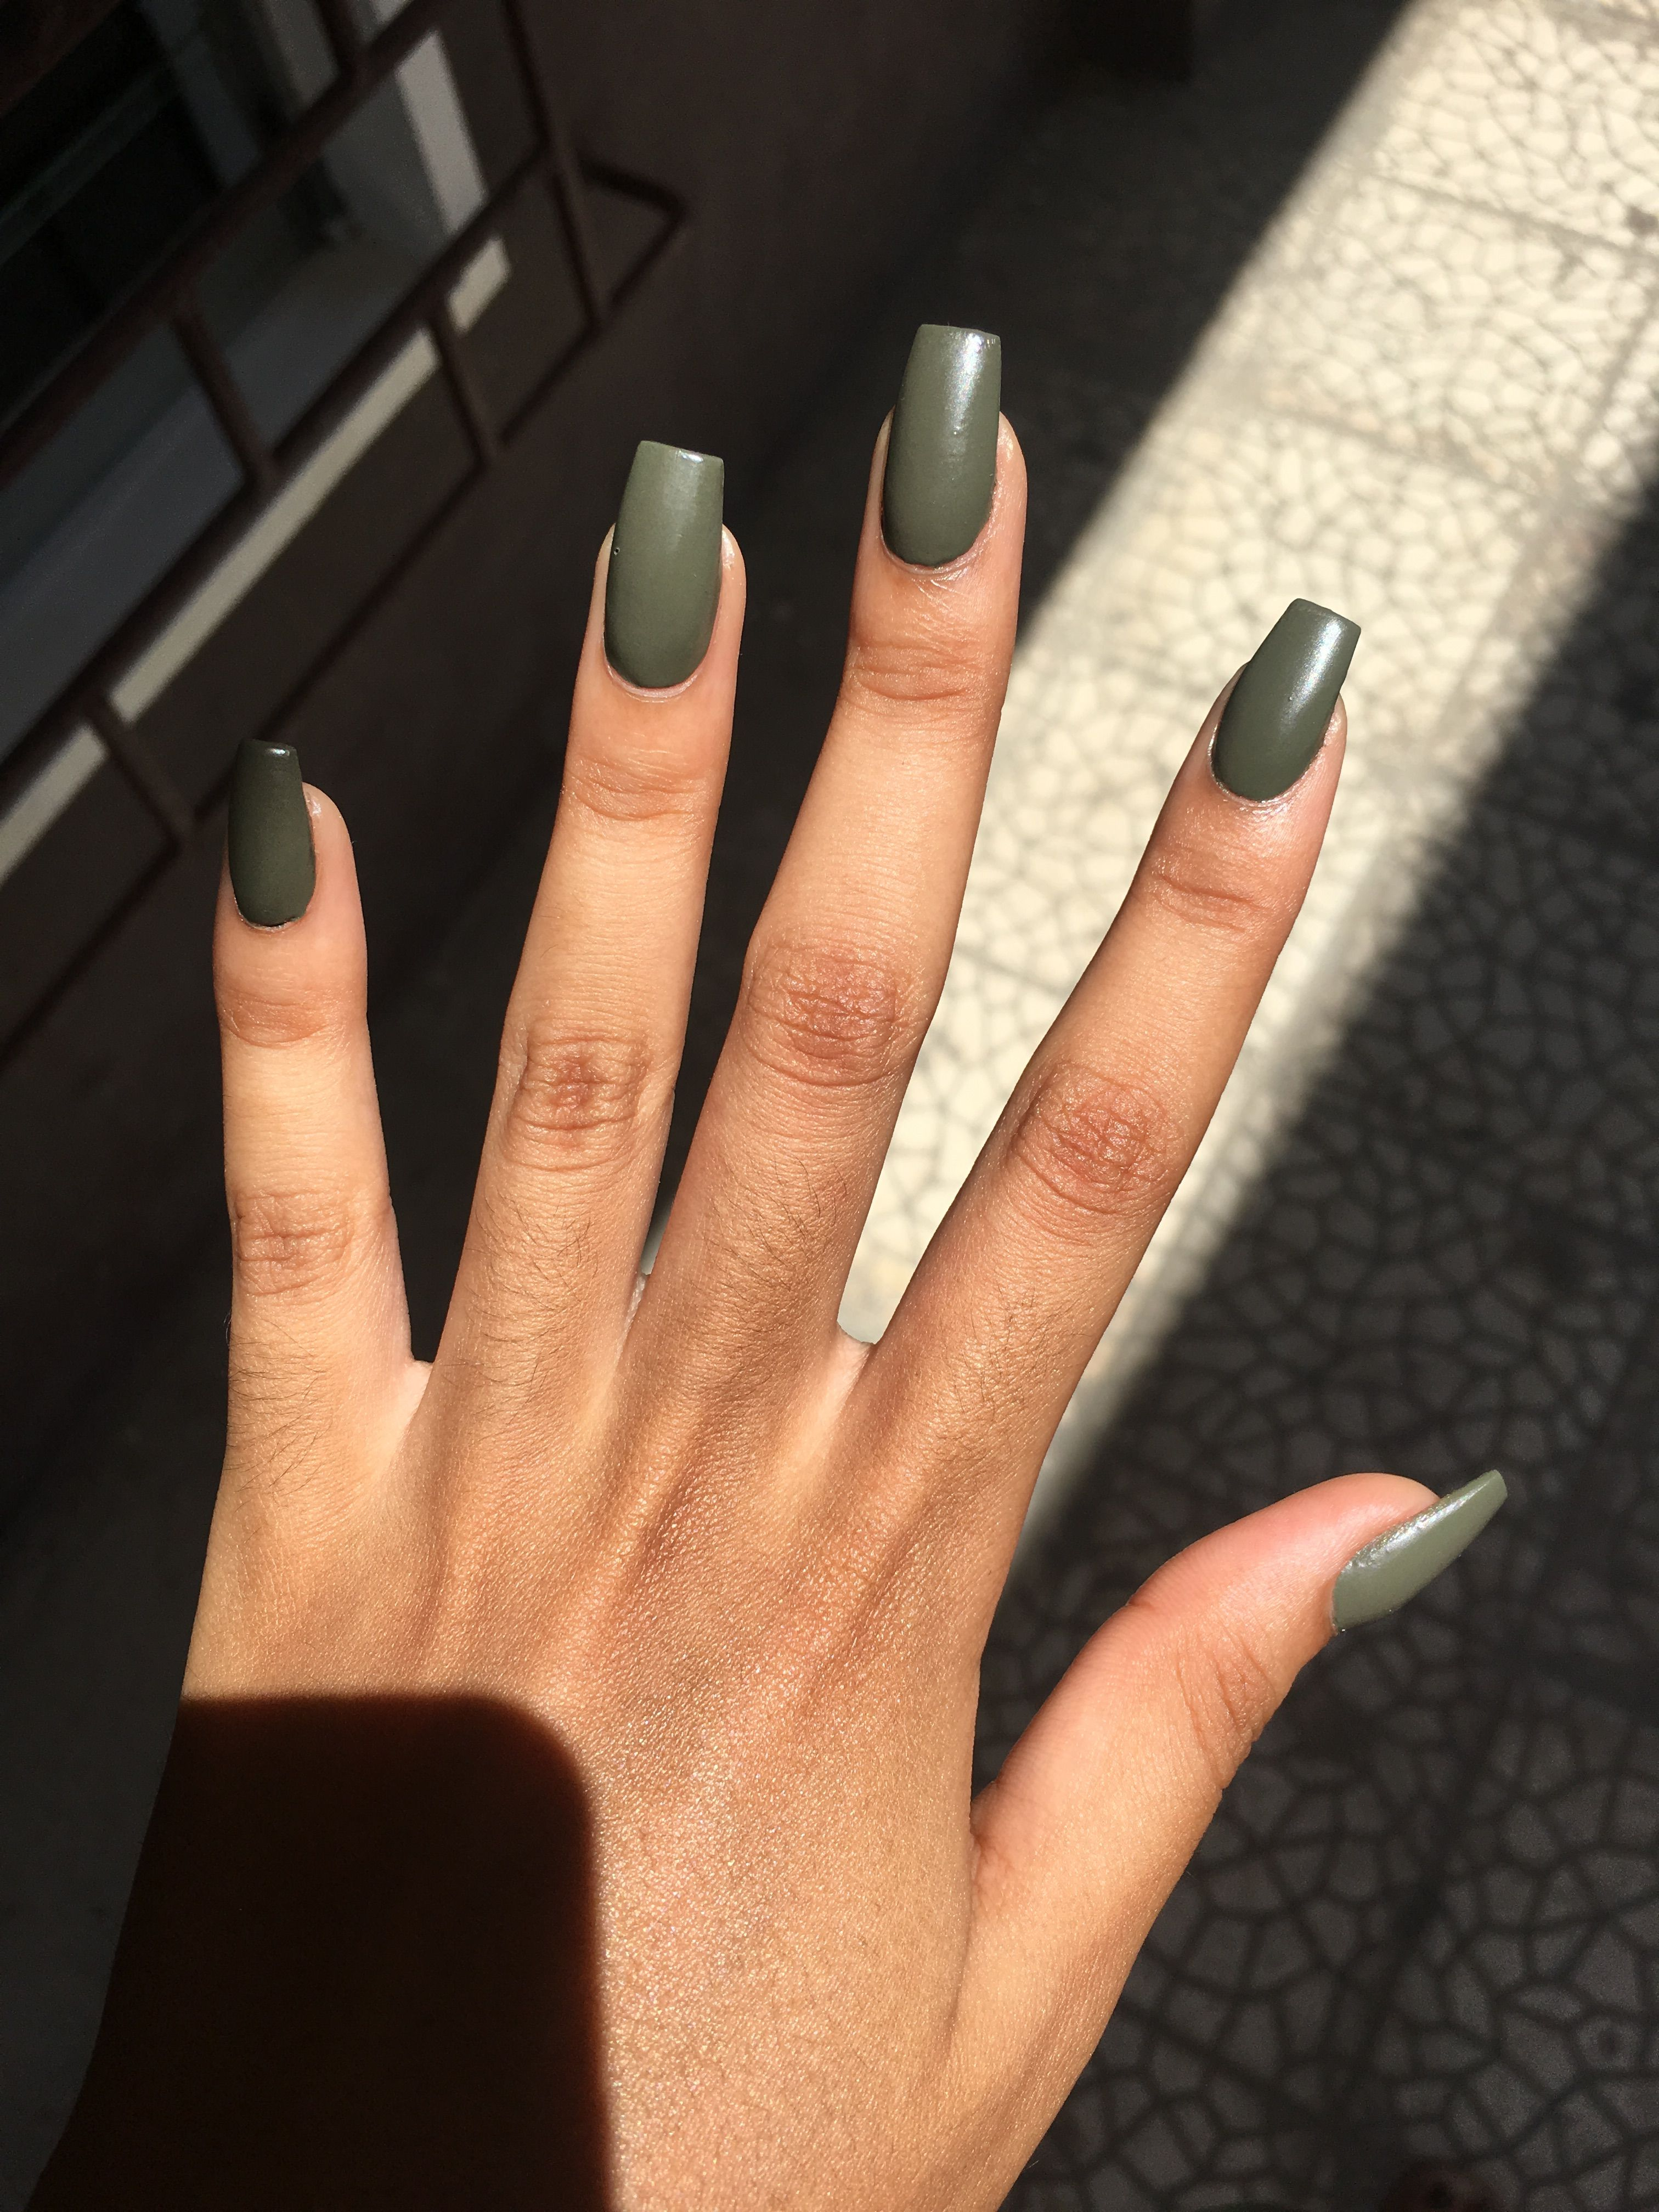 Green Matte Short Coffin Acrylic Nails Orange Acrylic Nails Green Acrylic Nails Square Acrylic Nails